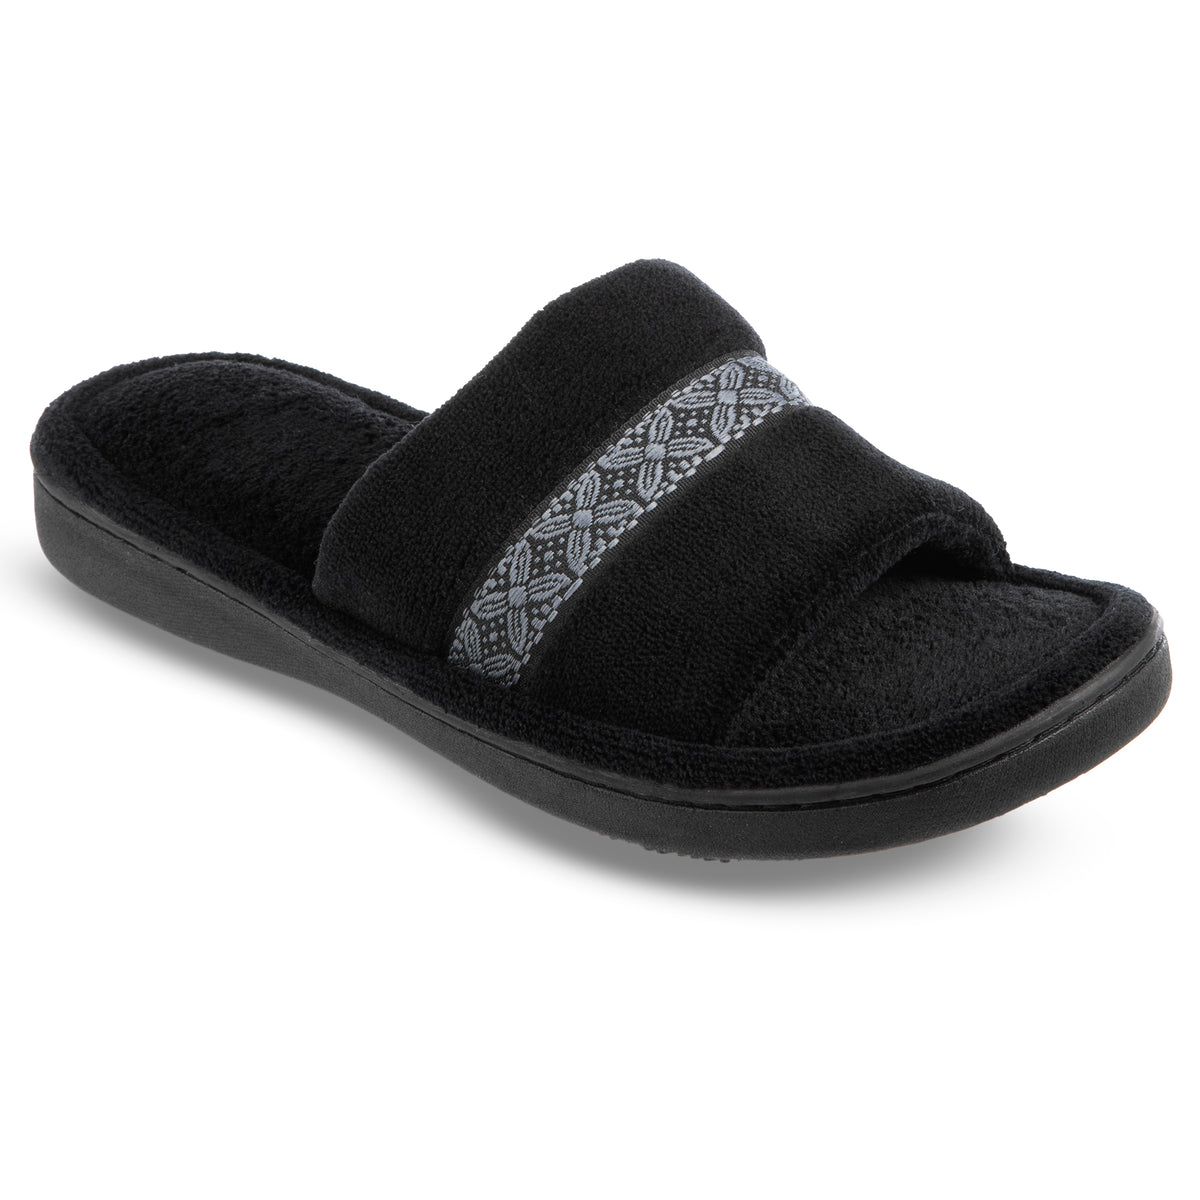 Women's Microterry Jenna Slide Slippers